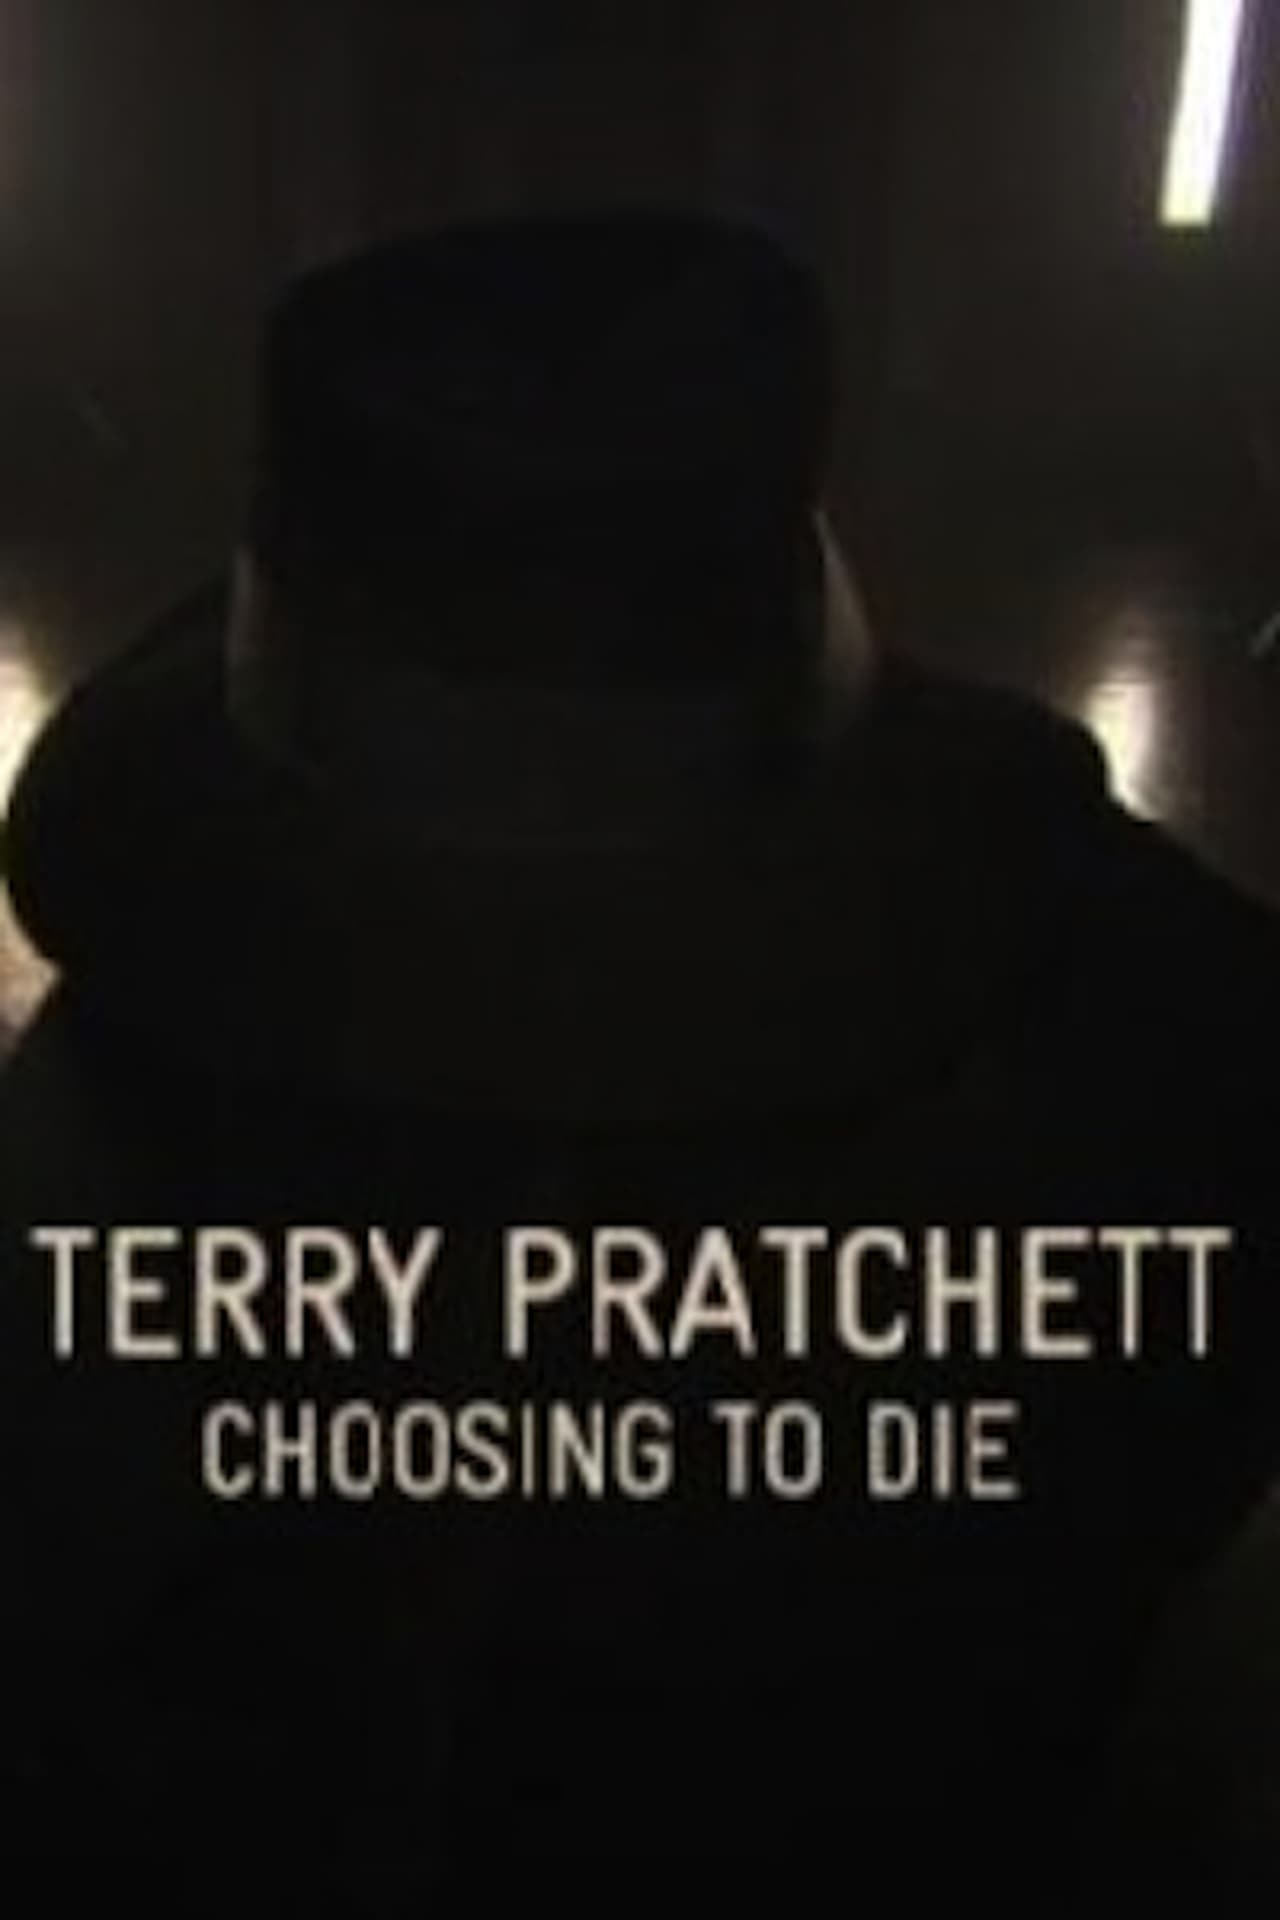 Terry Pratchett: Choosing to Die (2011)